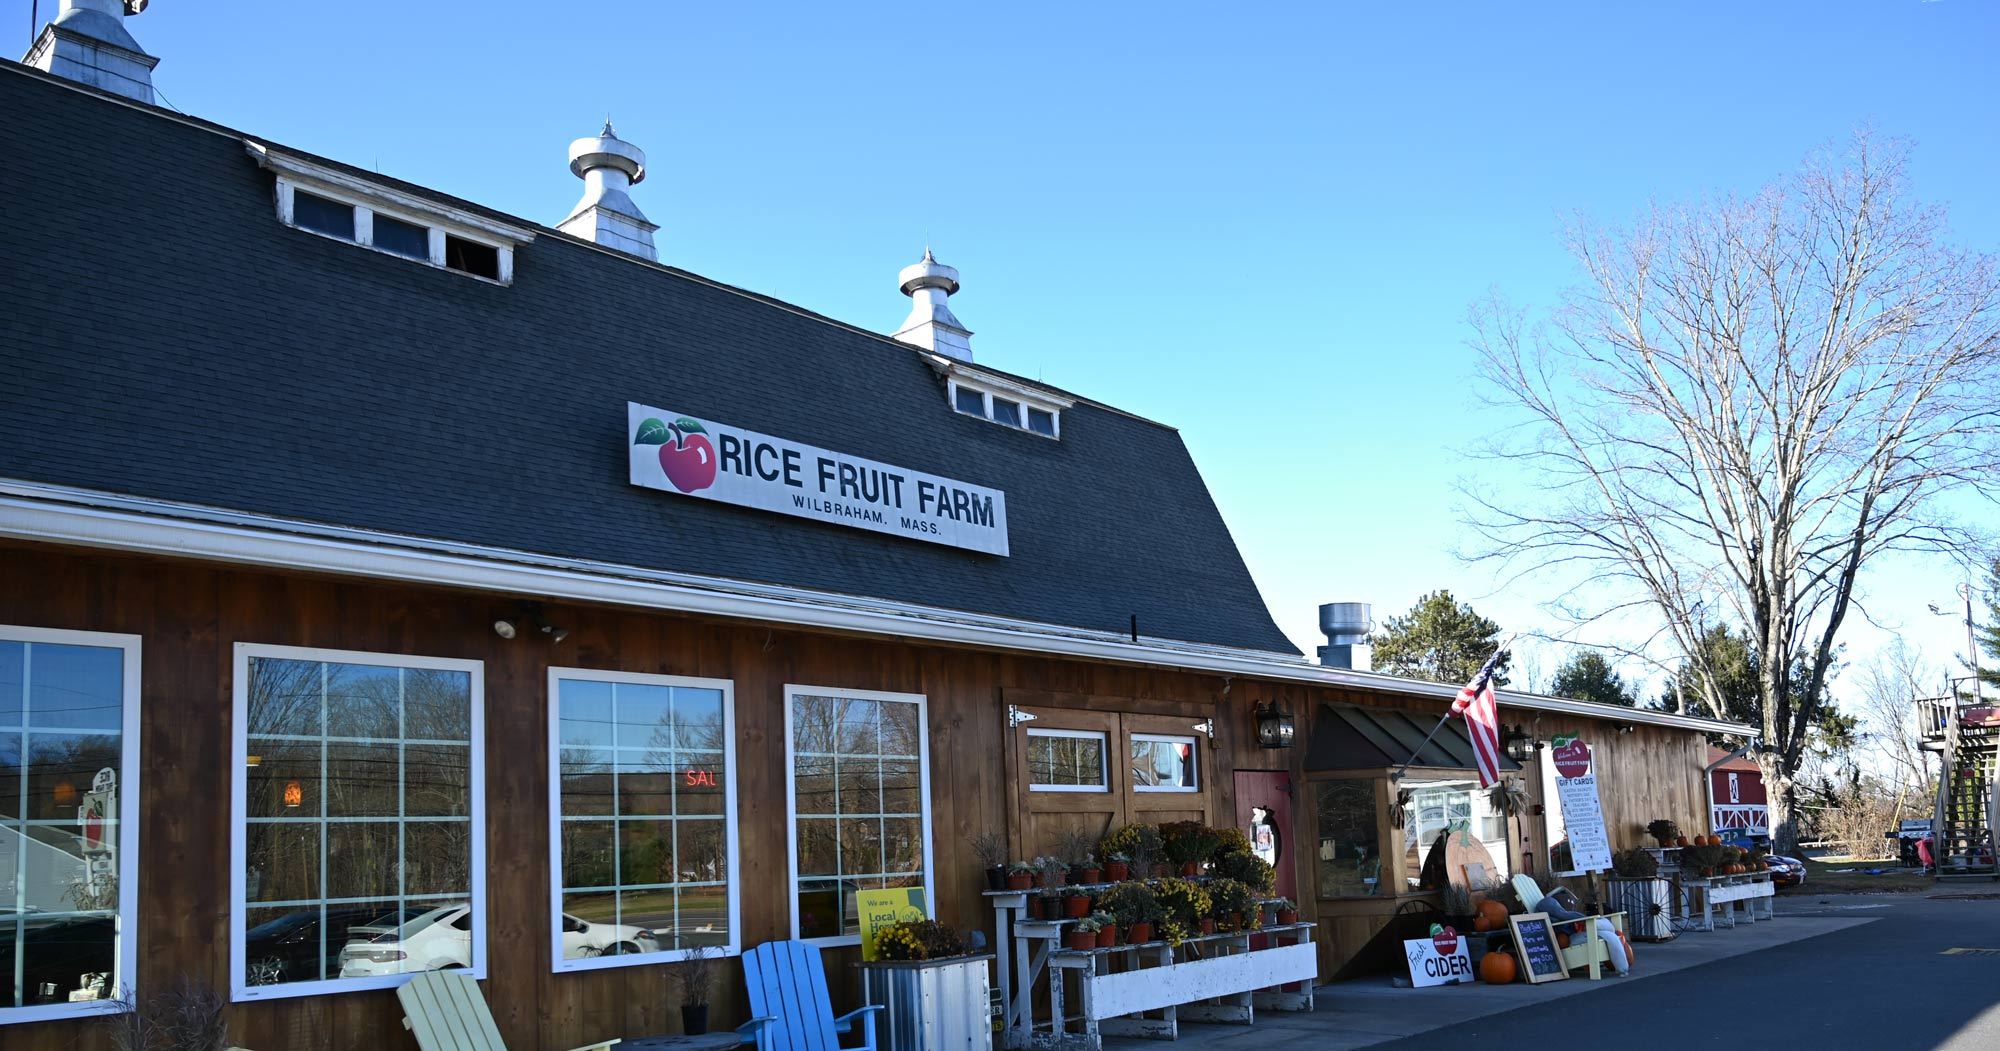 Rice Fruit Farm Wilbraham, Mass. front view of store